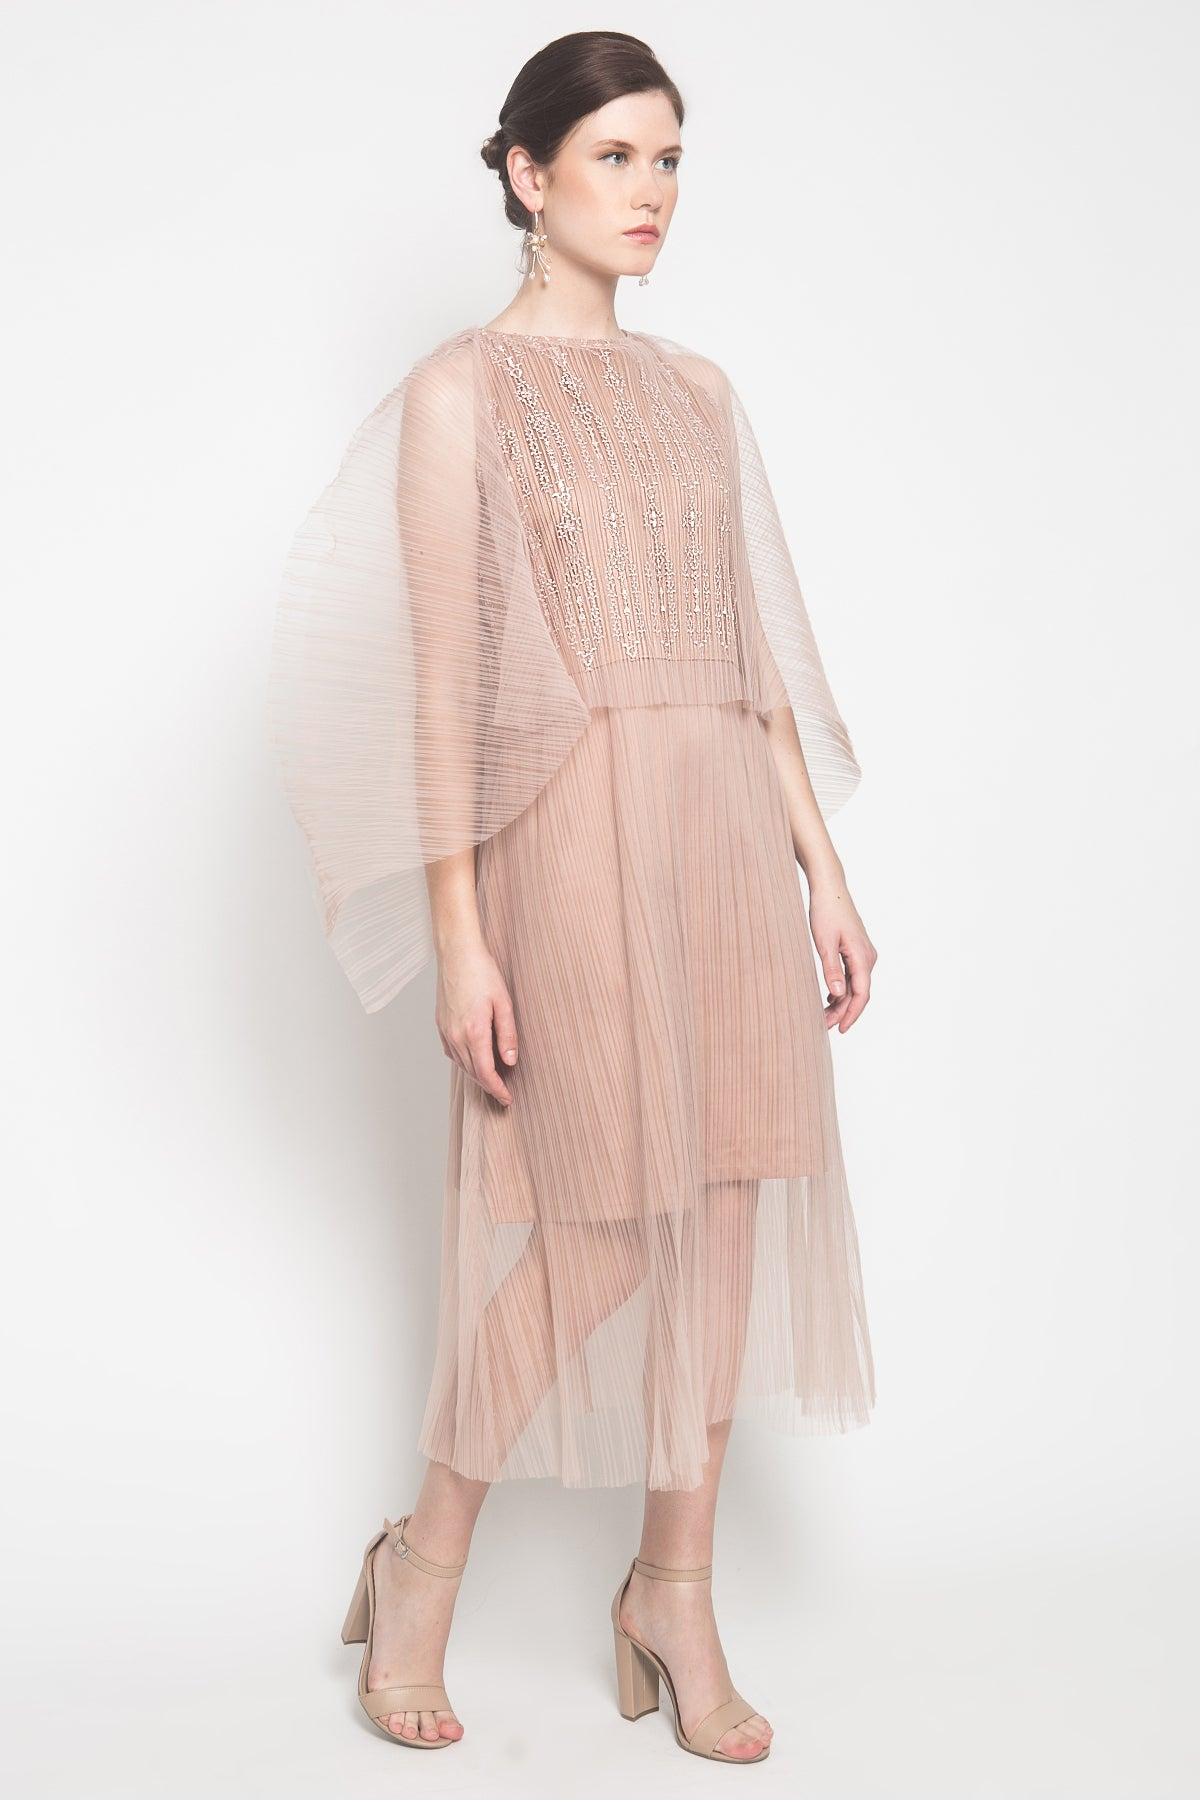 Dahayu Dress in Champagne